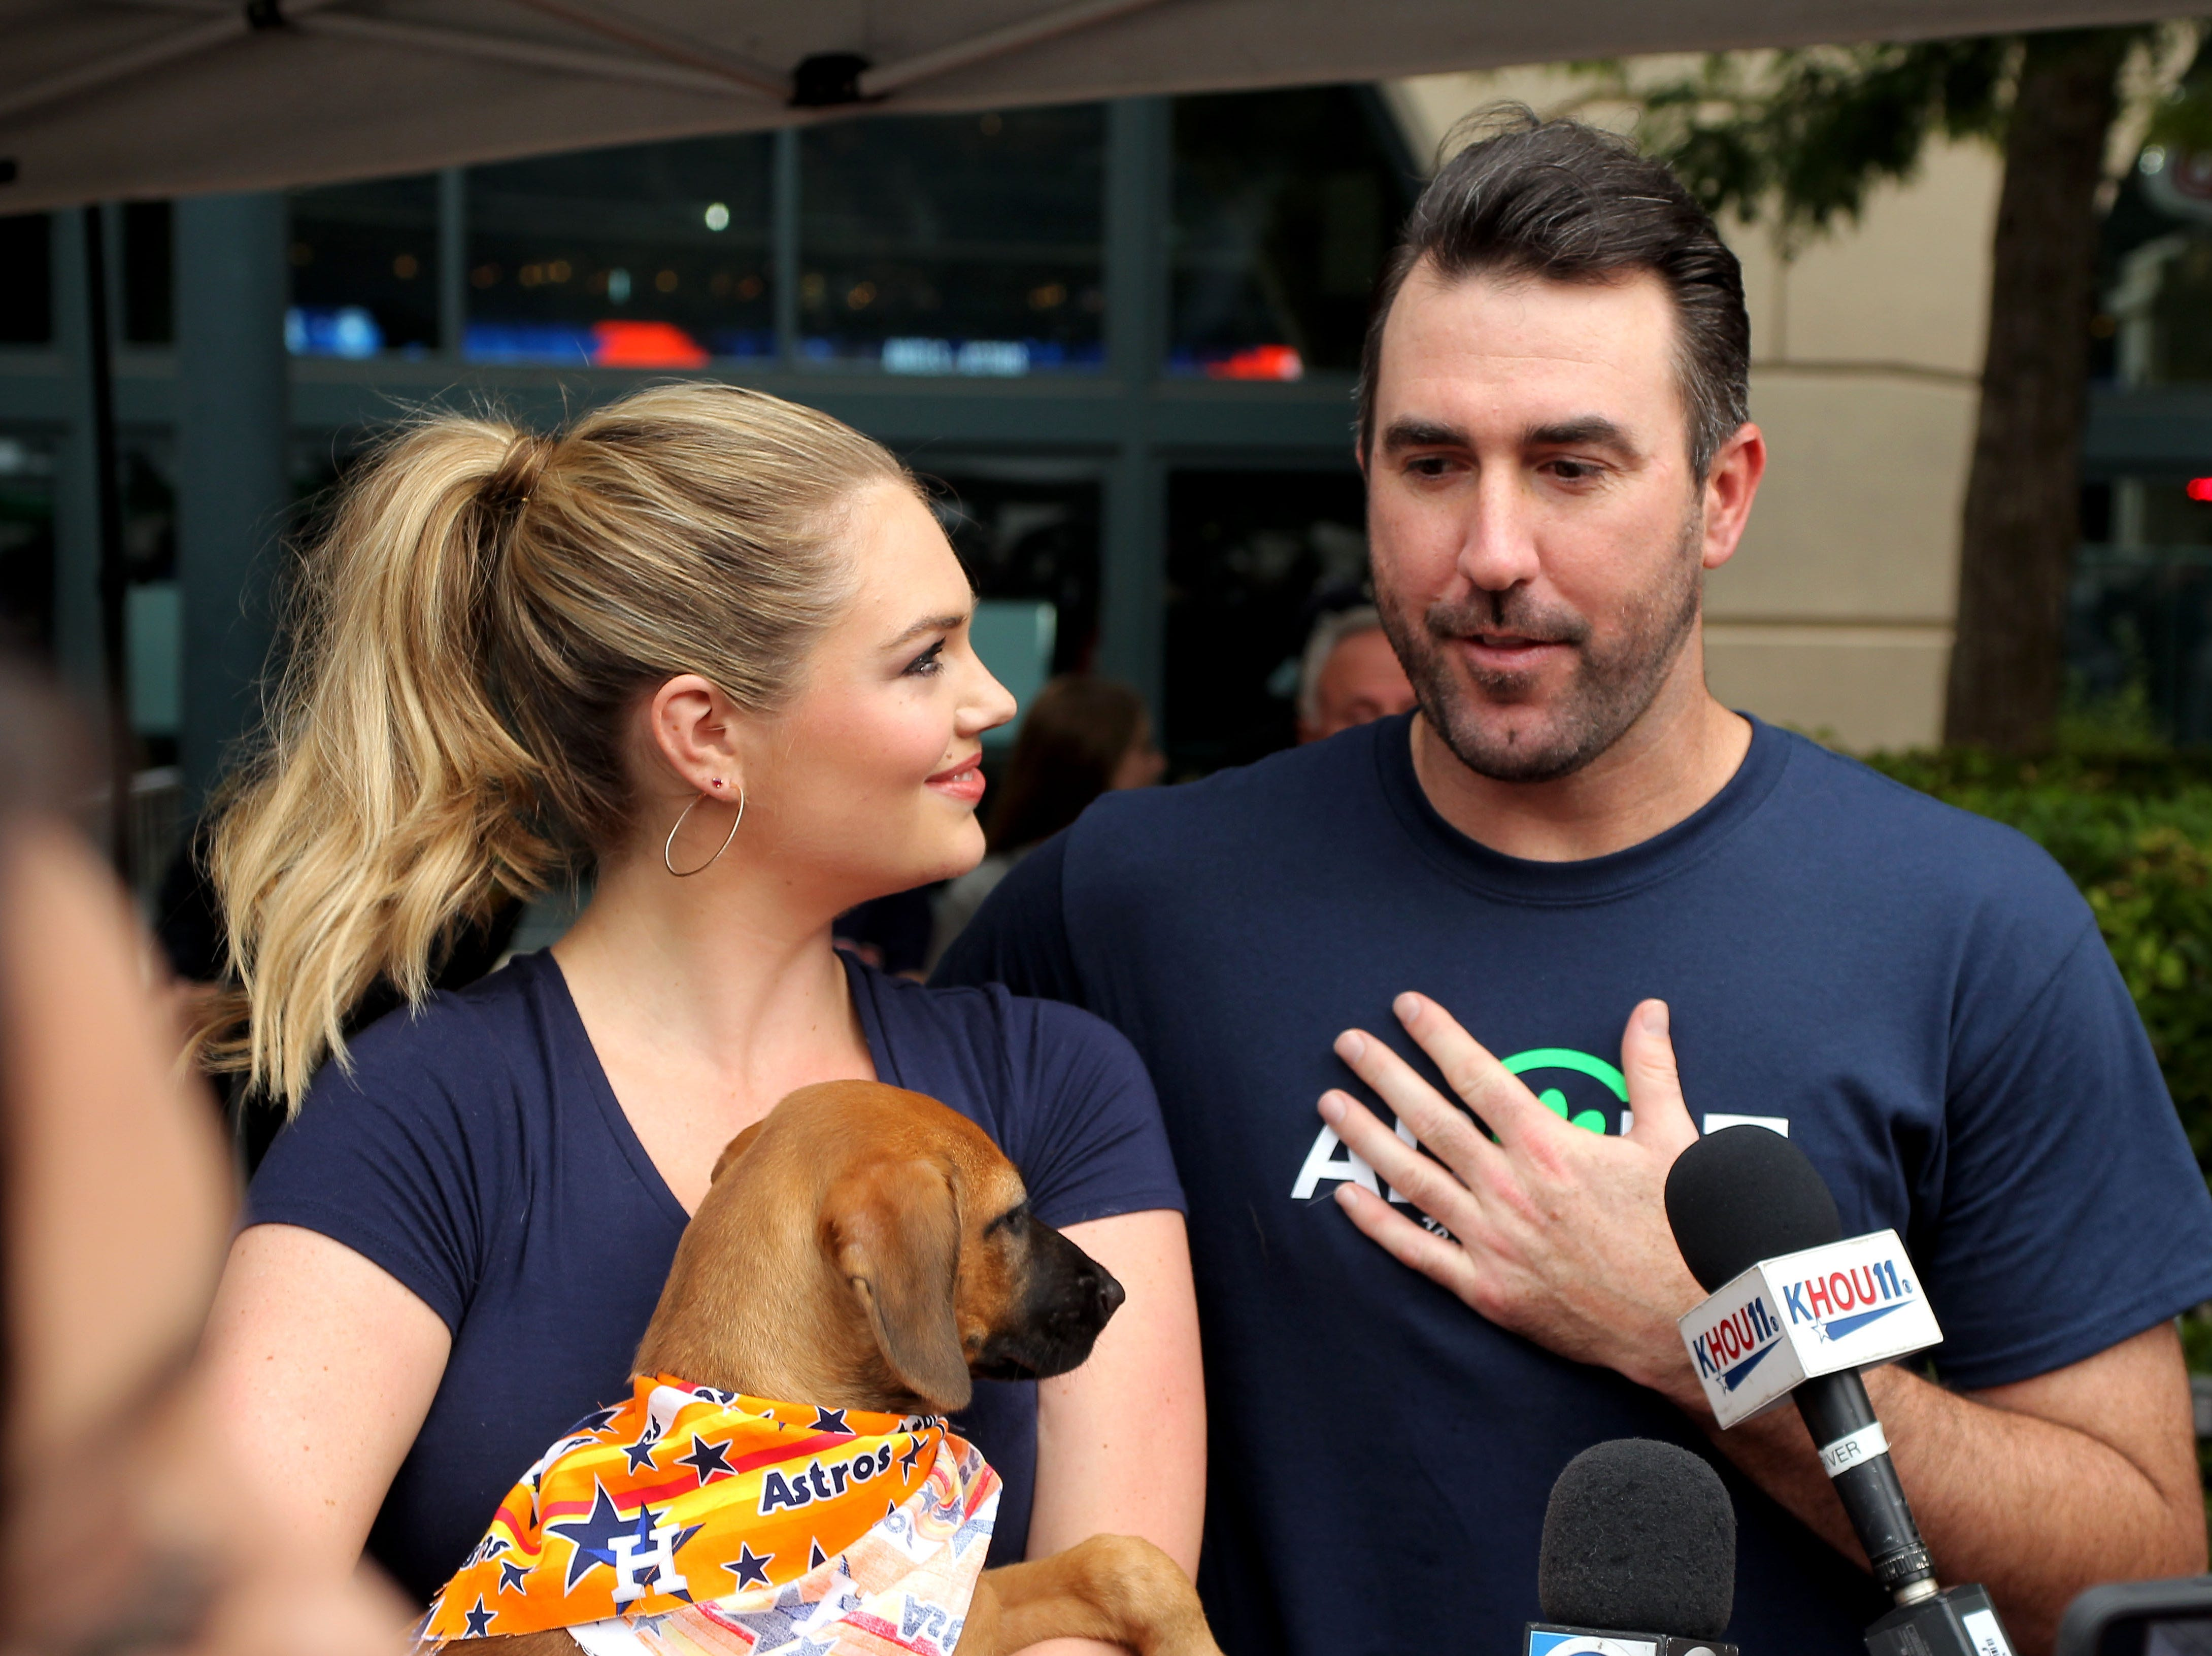 Houston Astros starting pitcher Justin Verlander and wife Kate Upton answer questions from the media during the Astros' Dog Day event.